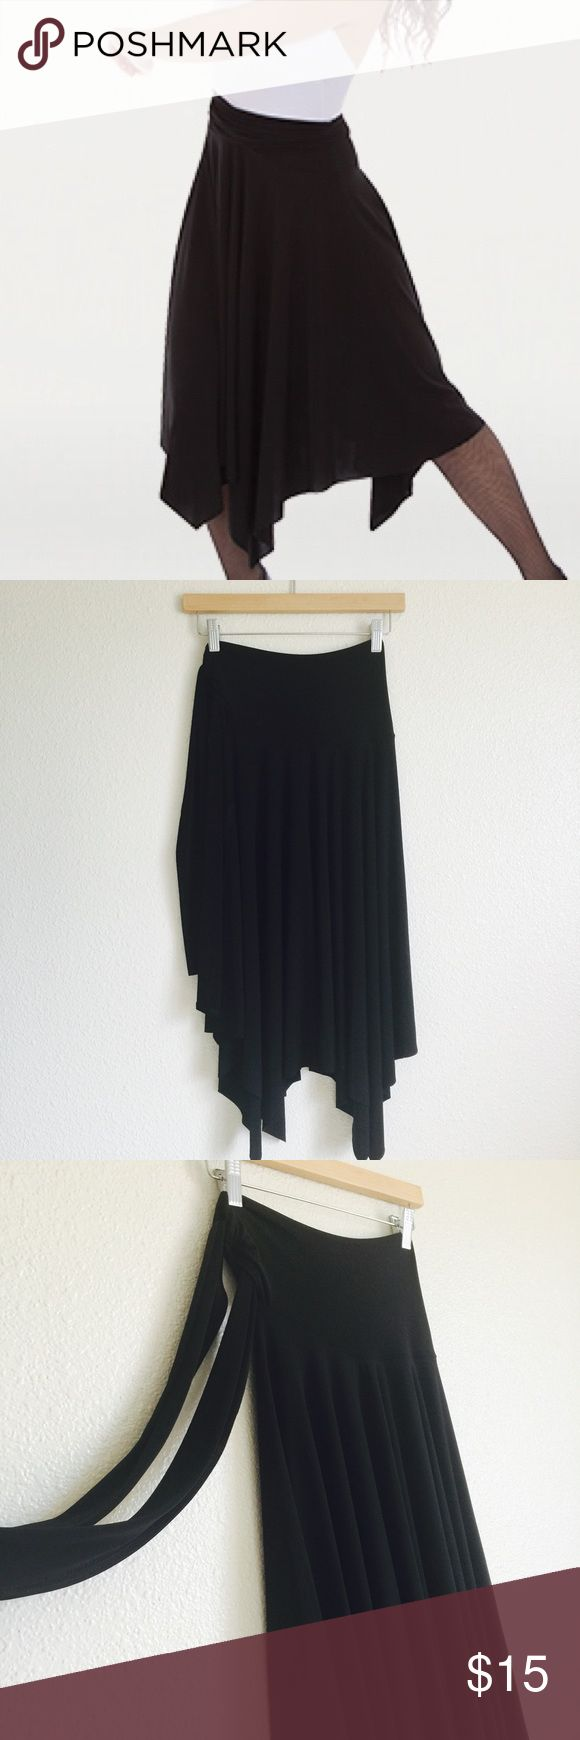 "• Body Wrapper in black • Can be worn in different waist. ""Waist"" measures 11 inches. And length is about 28 inches. Very flowy and stretchy. No flaws. Body Wrapper Skirts Asymmetrical"